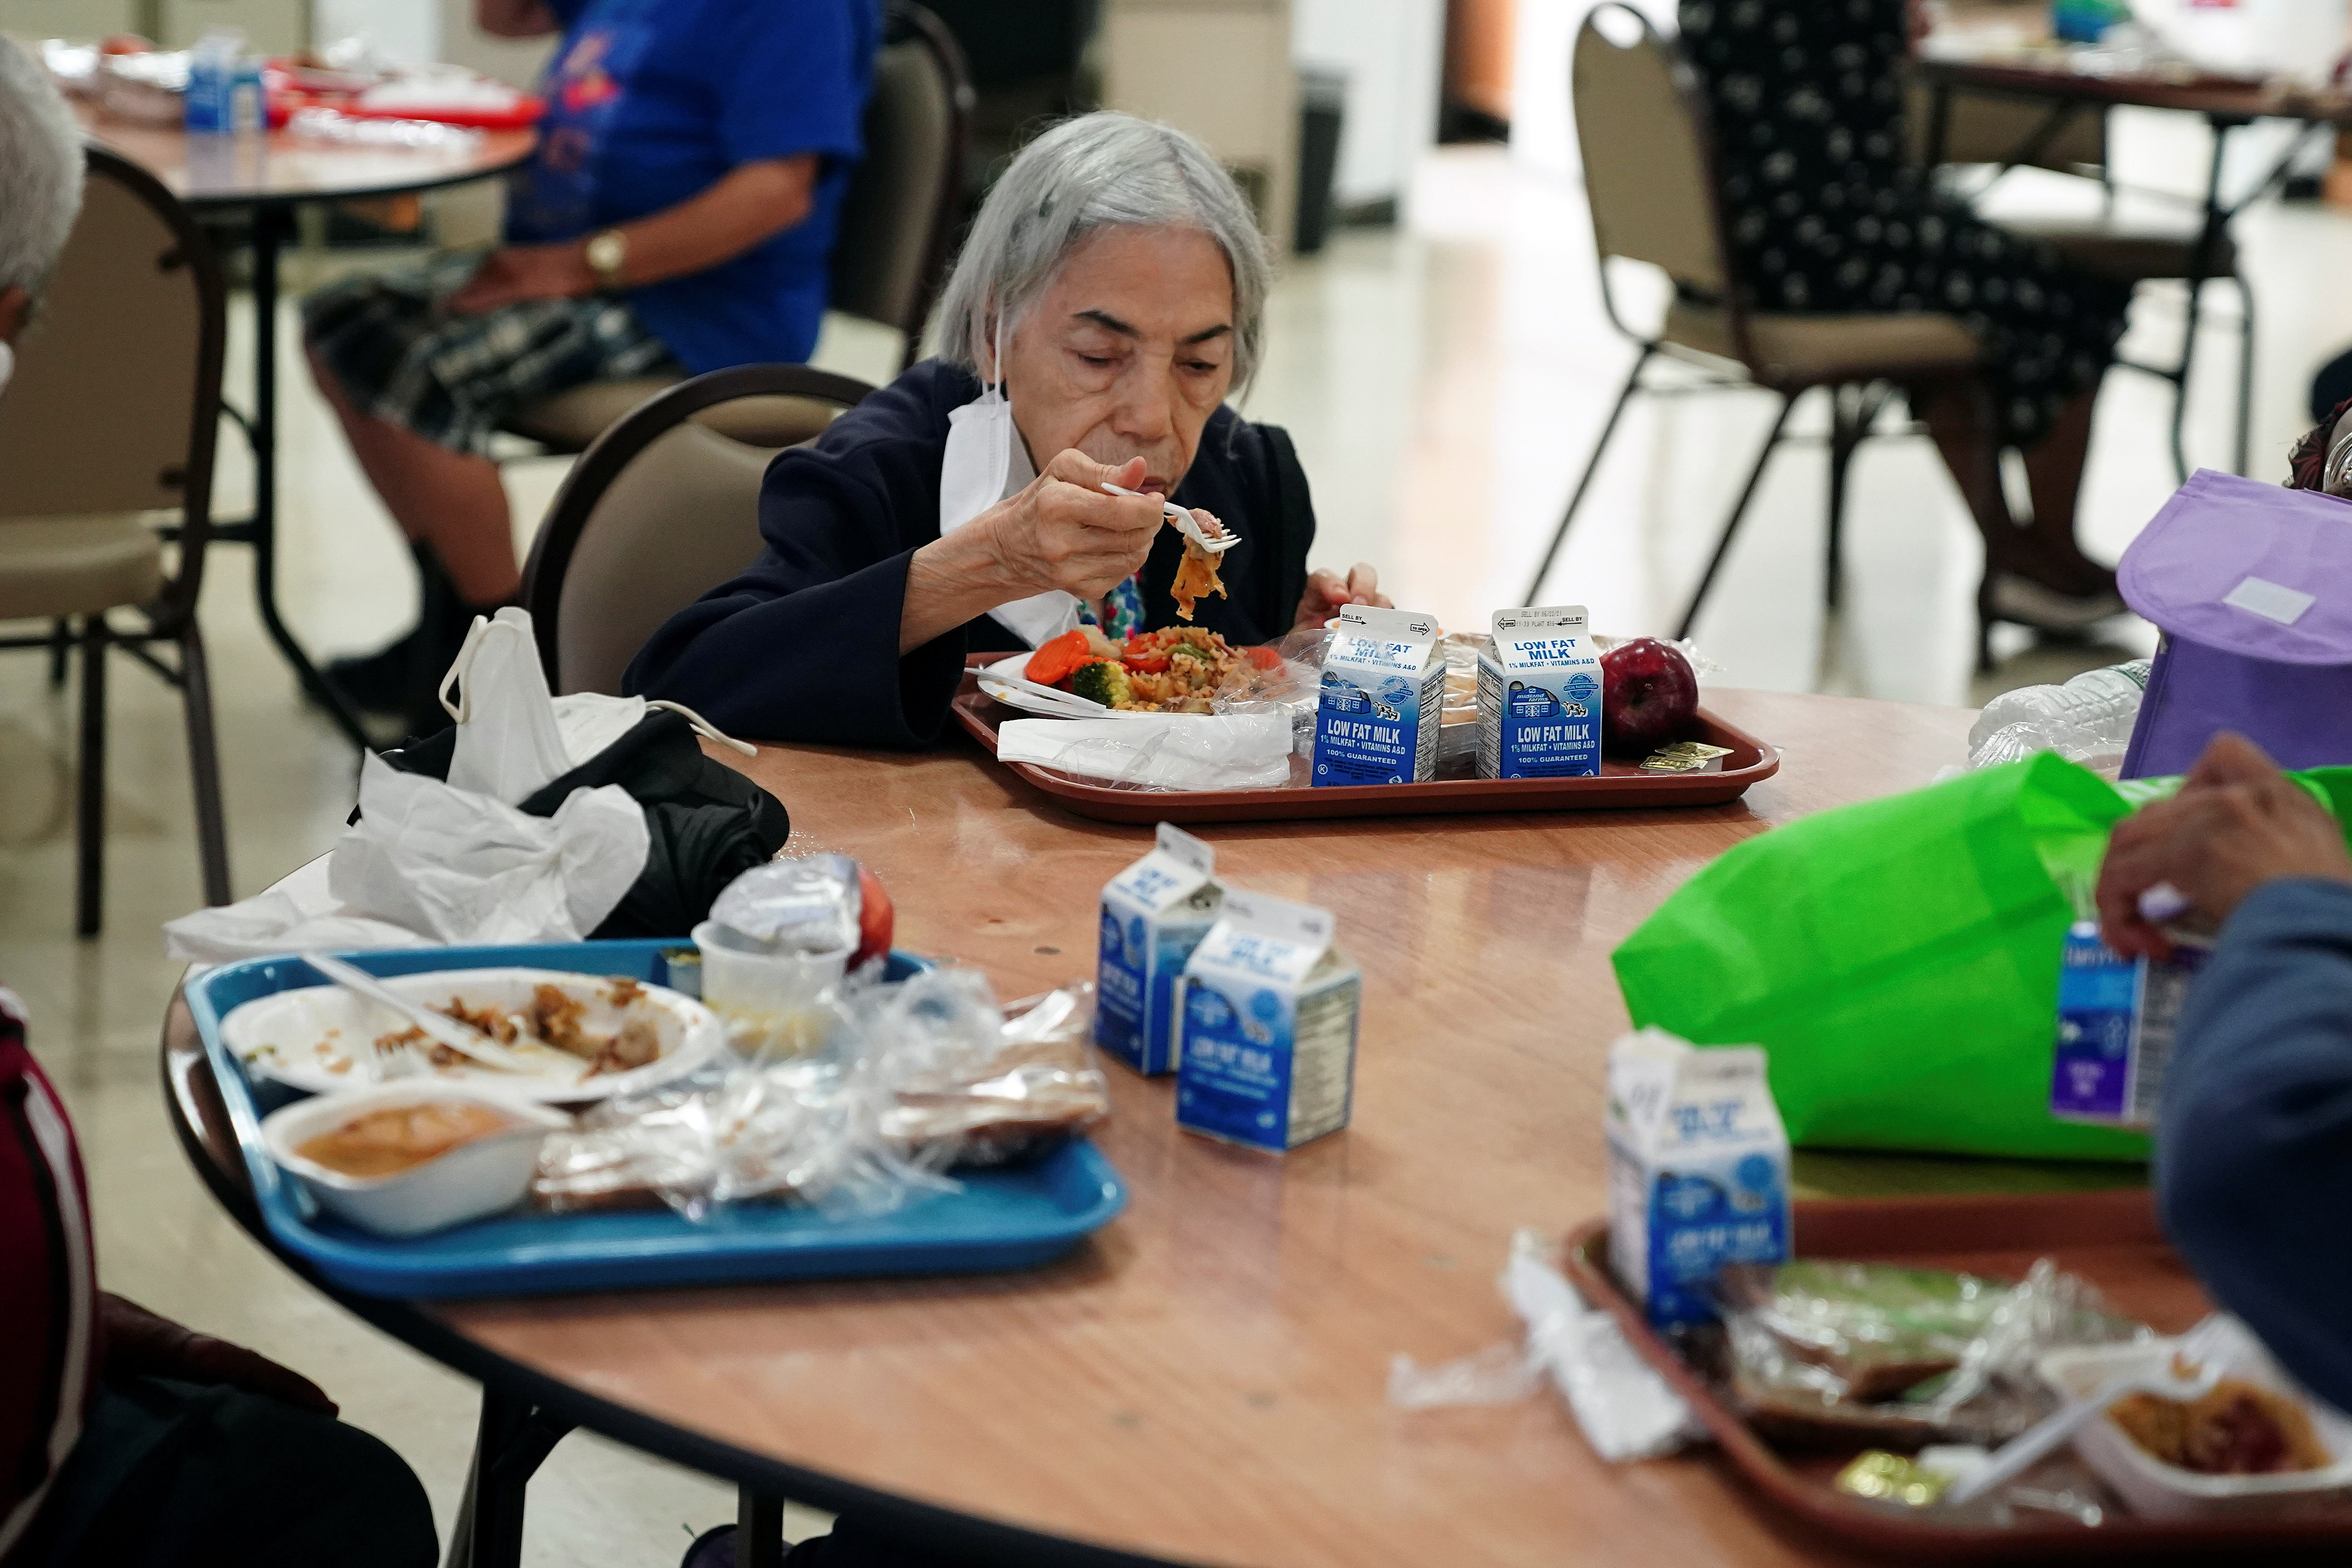 People eat lunch at the S.T.A.R. Senior Center in New York City, New York, U.S., June 14, 2021. Picture taken June 14, 2021.  REUTERS/Carlo Allegri